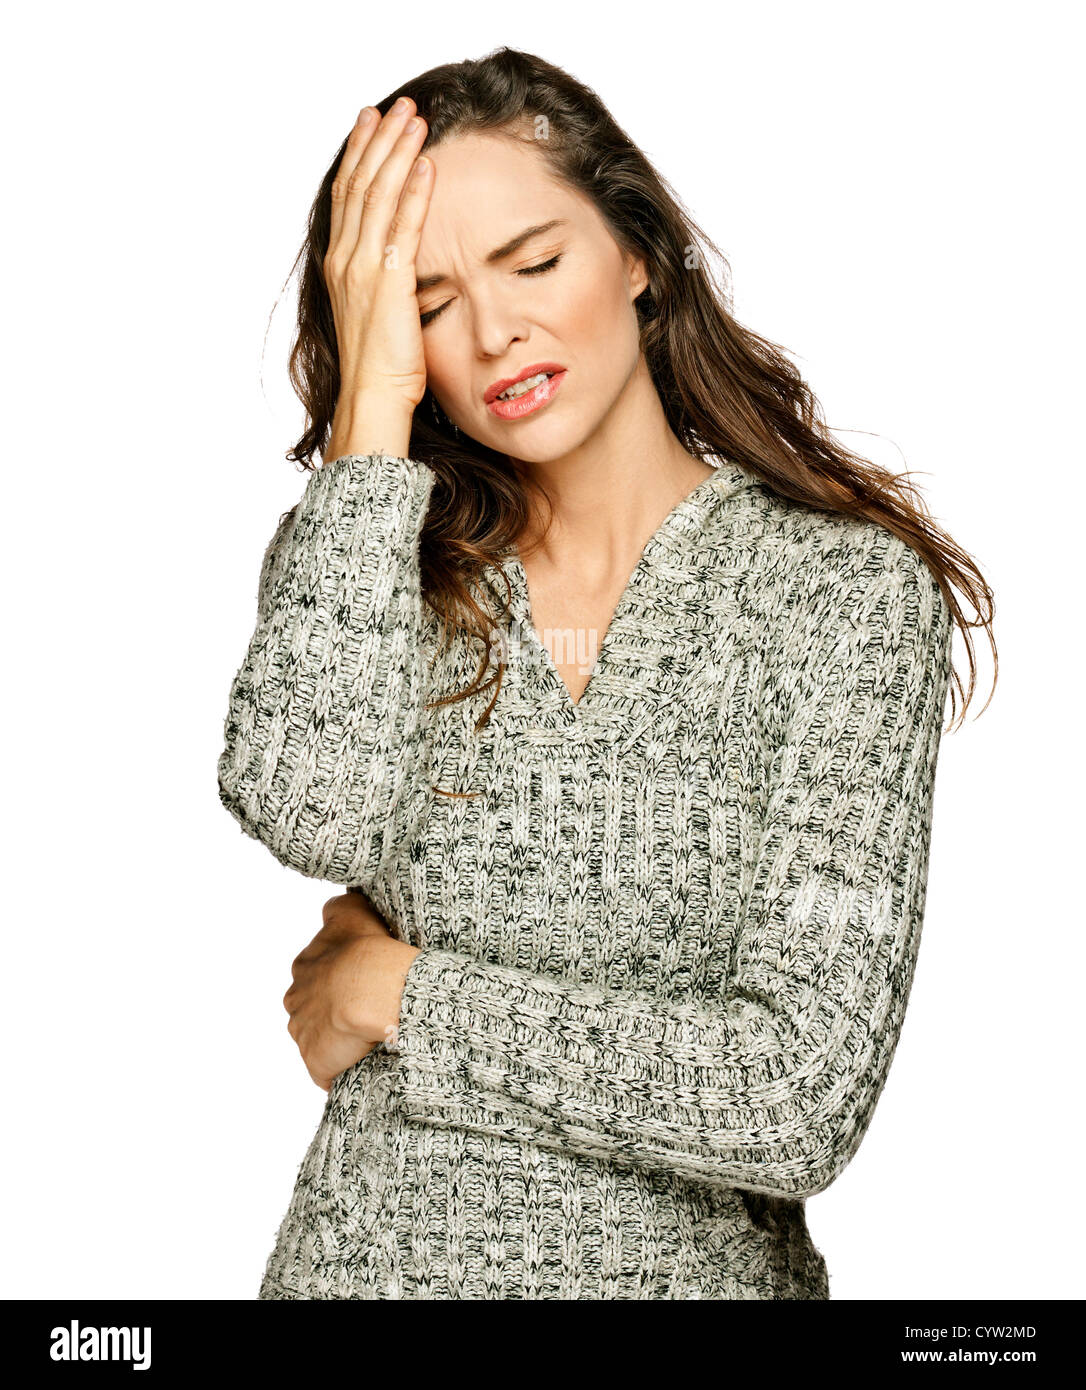 A young attractive woman suffering from illness or headache holding her head. Isolateed on white. - Stock Image